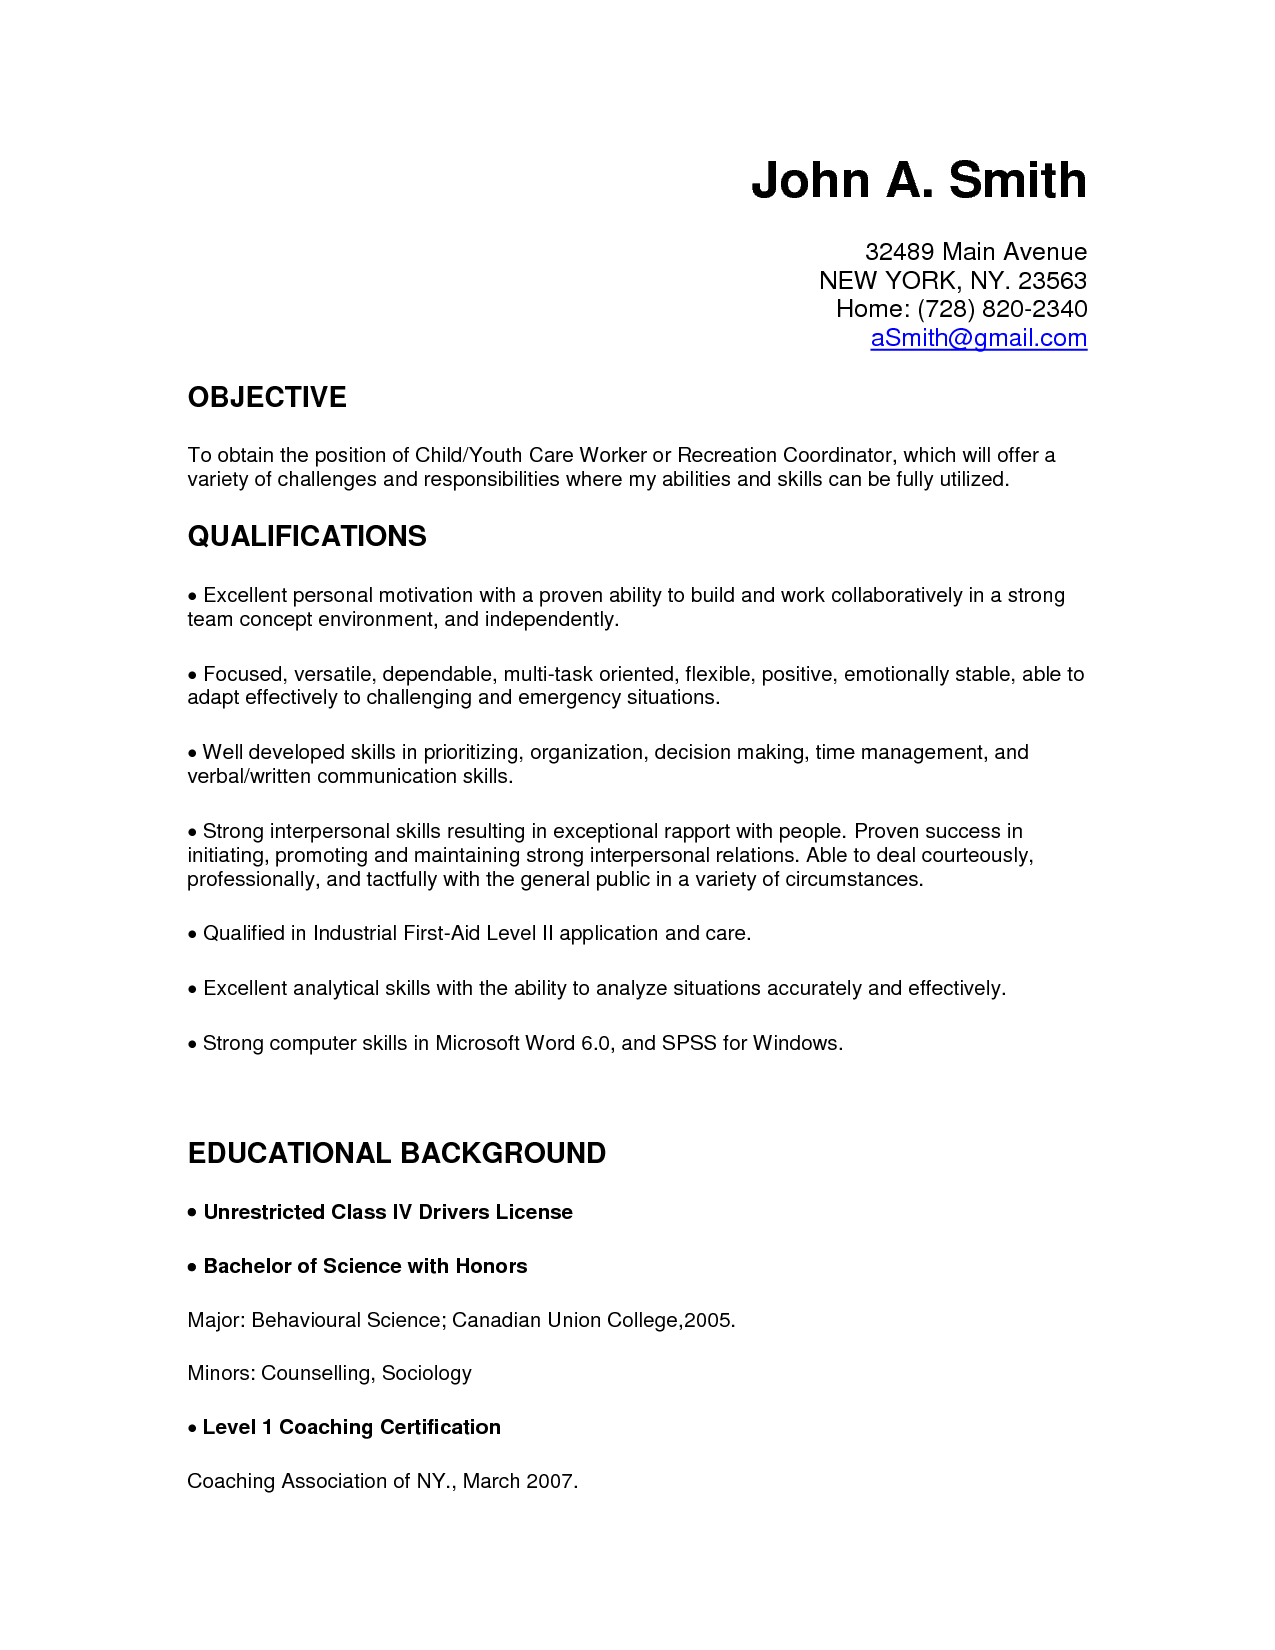 youth work cover letter examples sample uva career bakery position church worker best free home design idea inspiration - Youth Worker Cover Letter